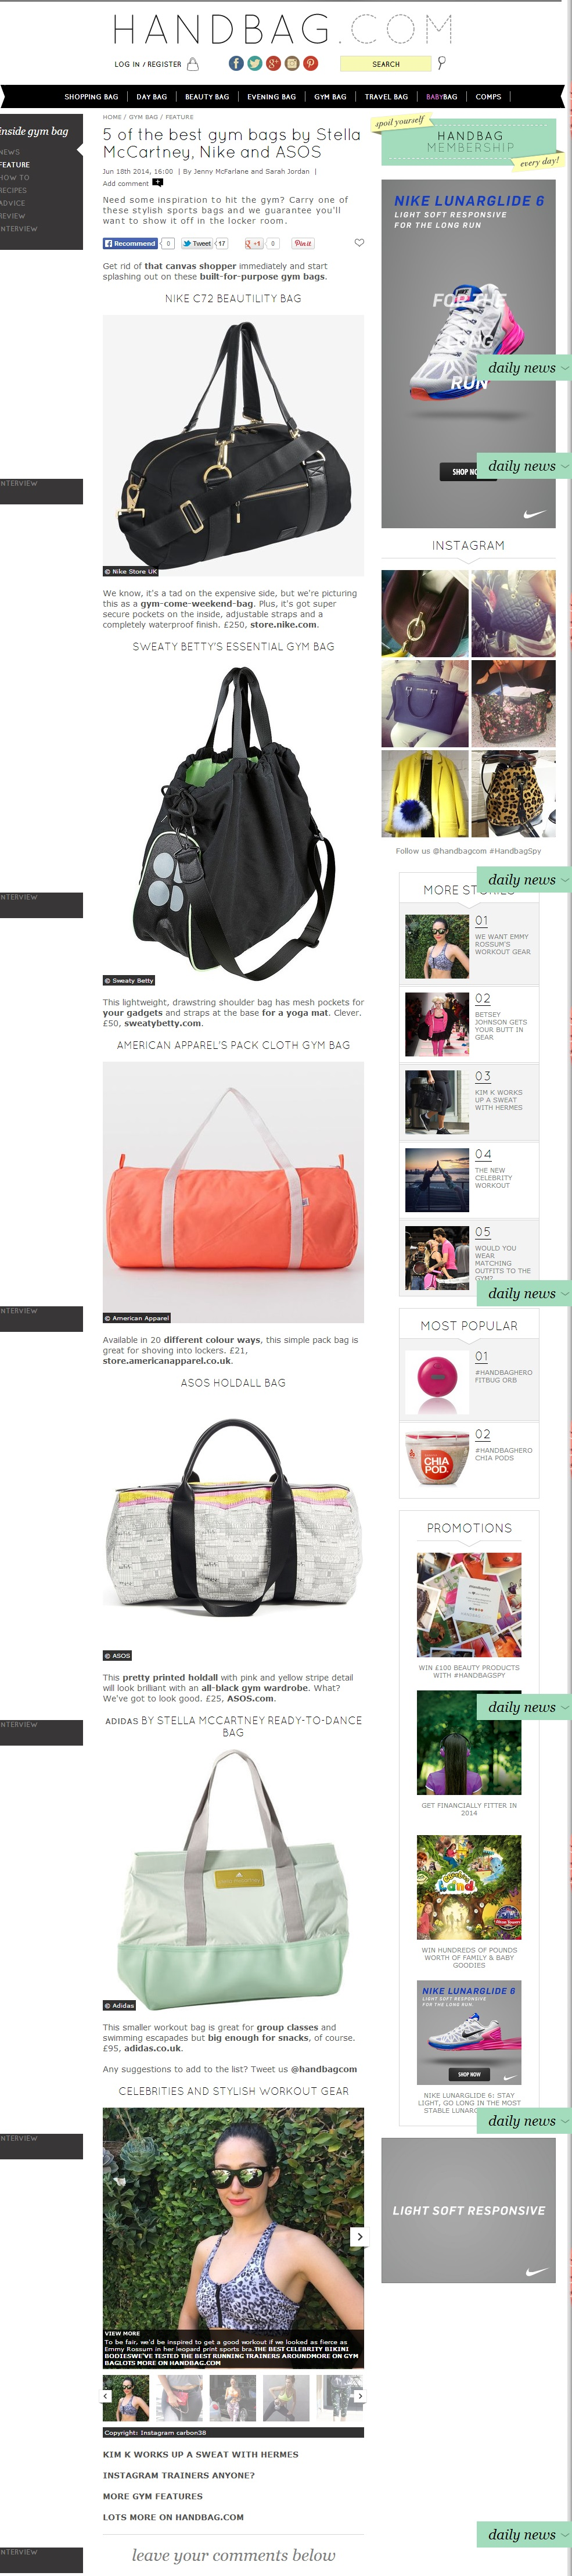 screencapture-www-handbag-com-gym-bag-feature-a427029-5-of-the-best-gym-bags-by-stella-mccartney-nike-and-asos-html